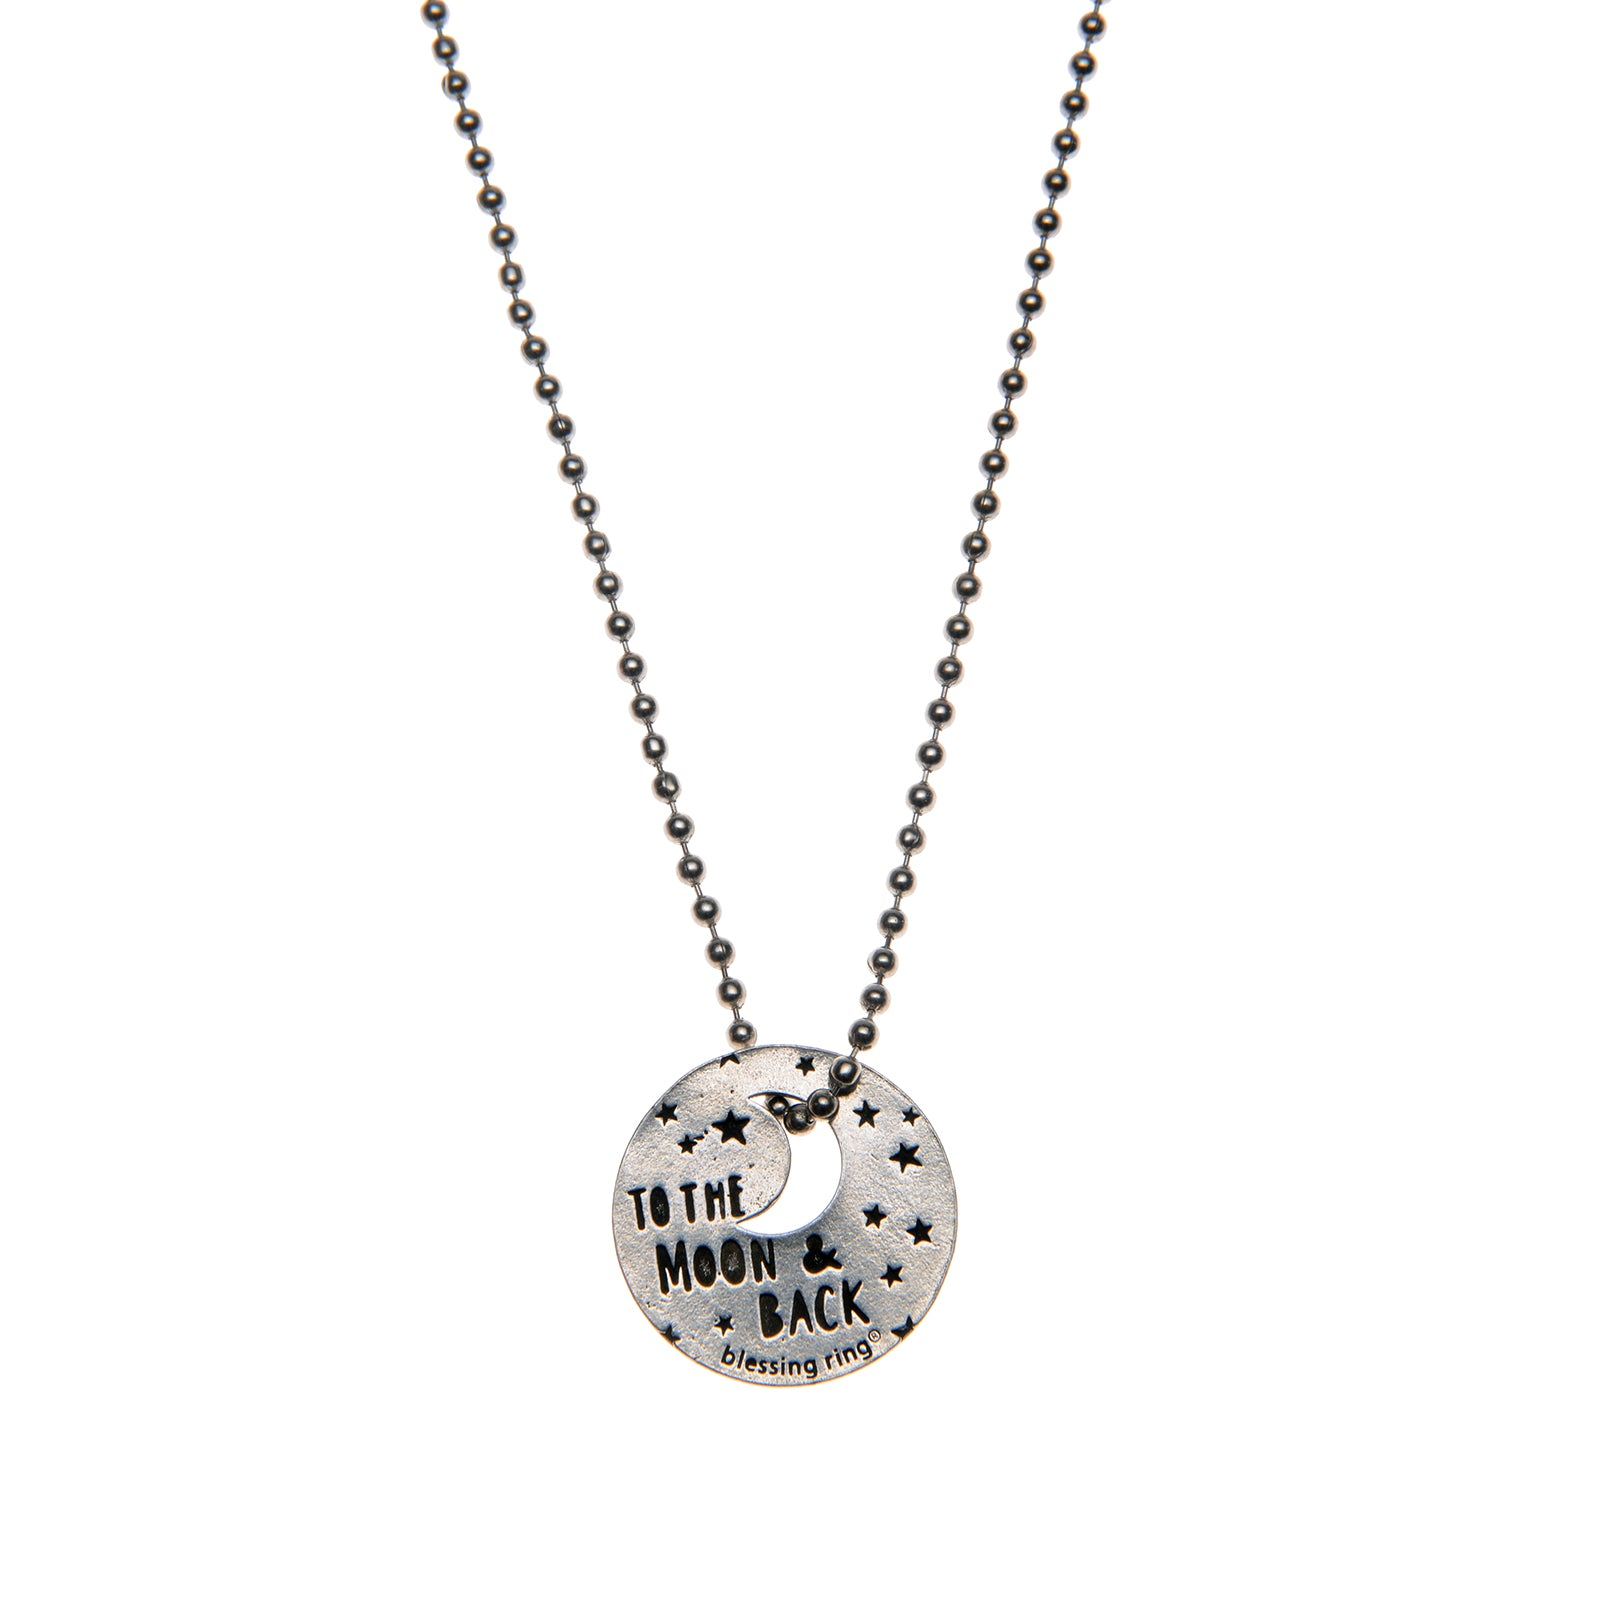 Ball Chain Necklace - Loose